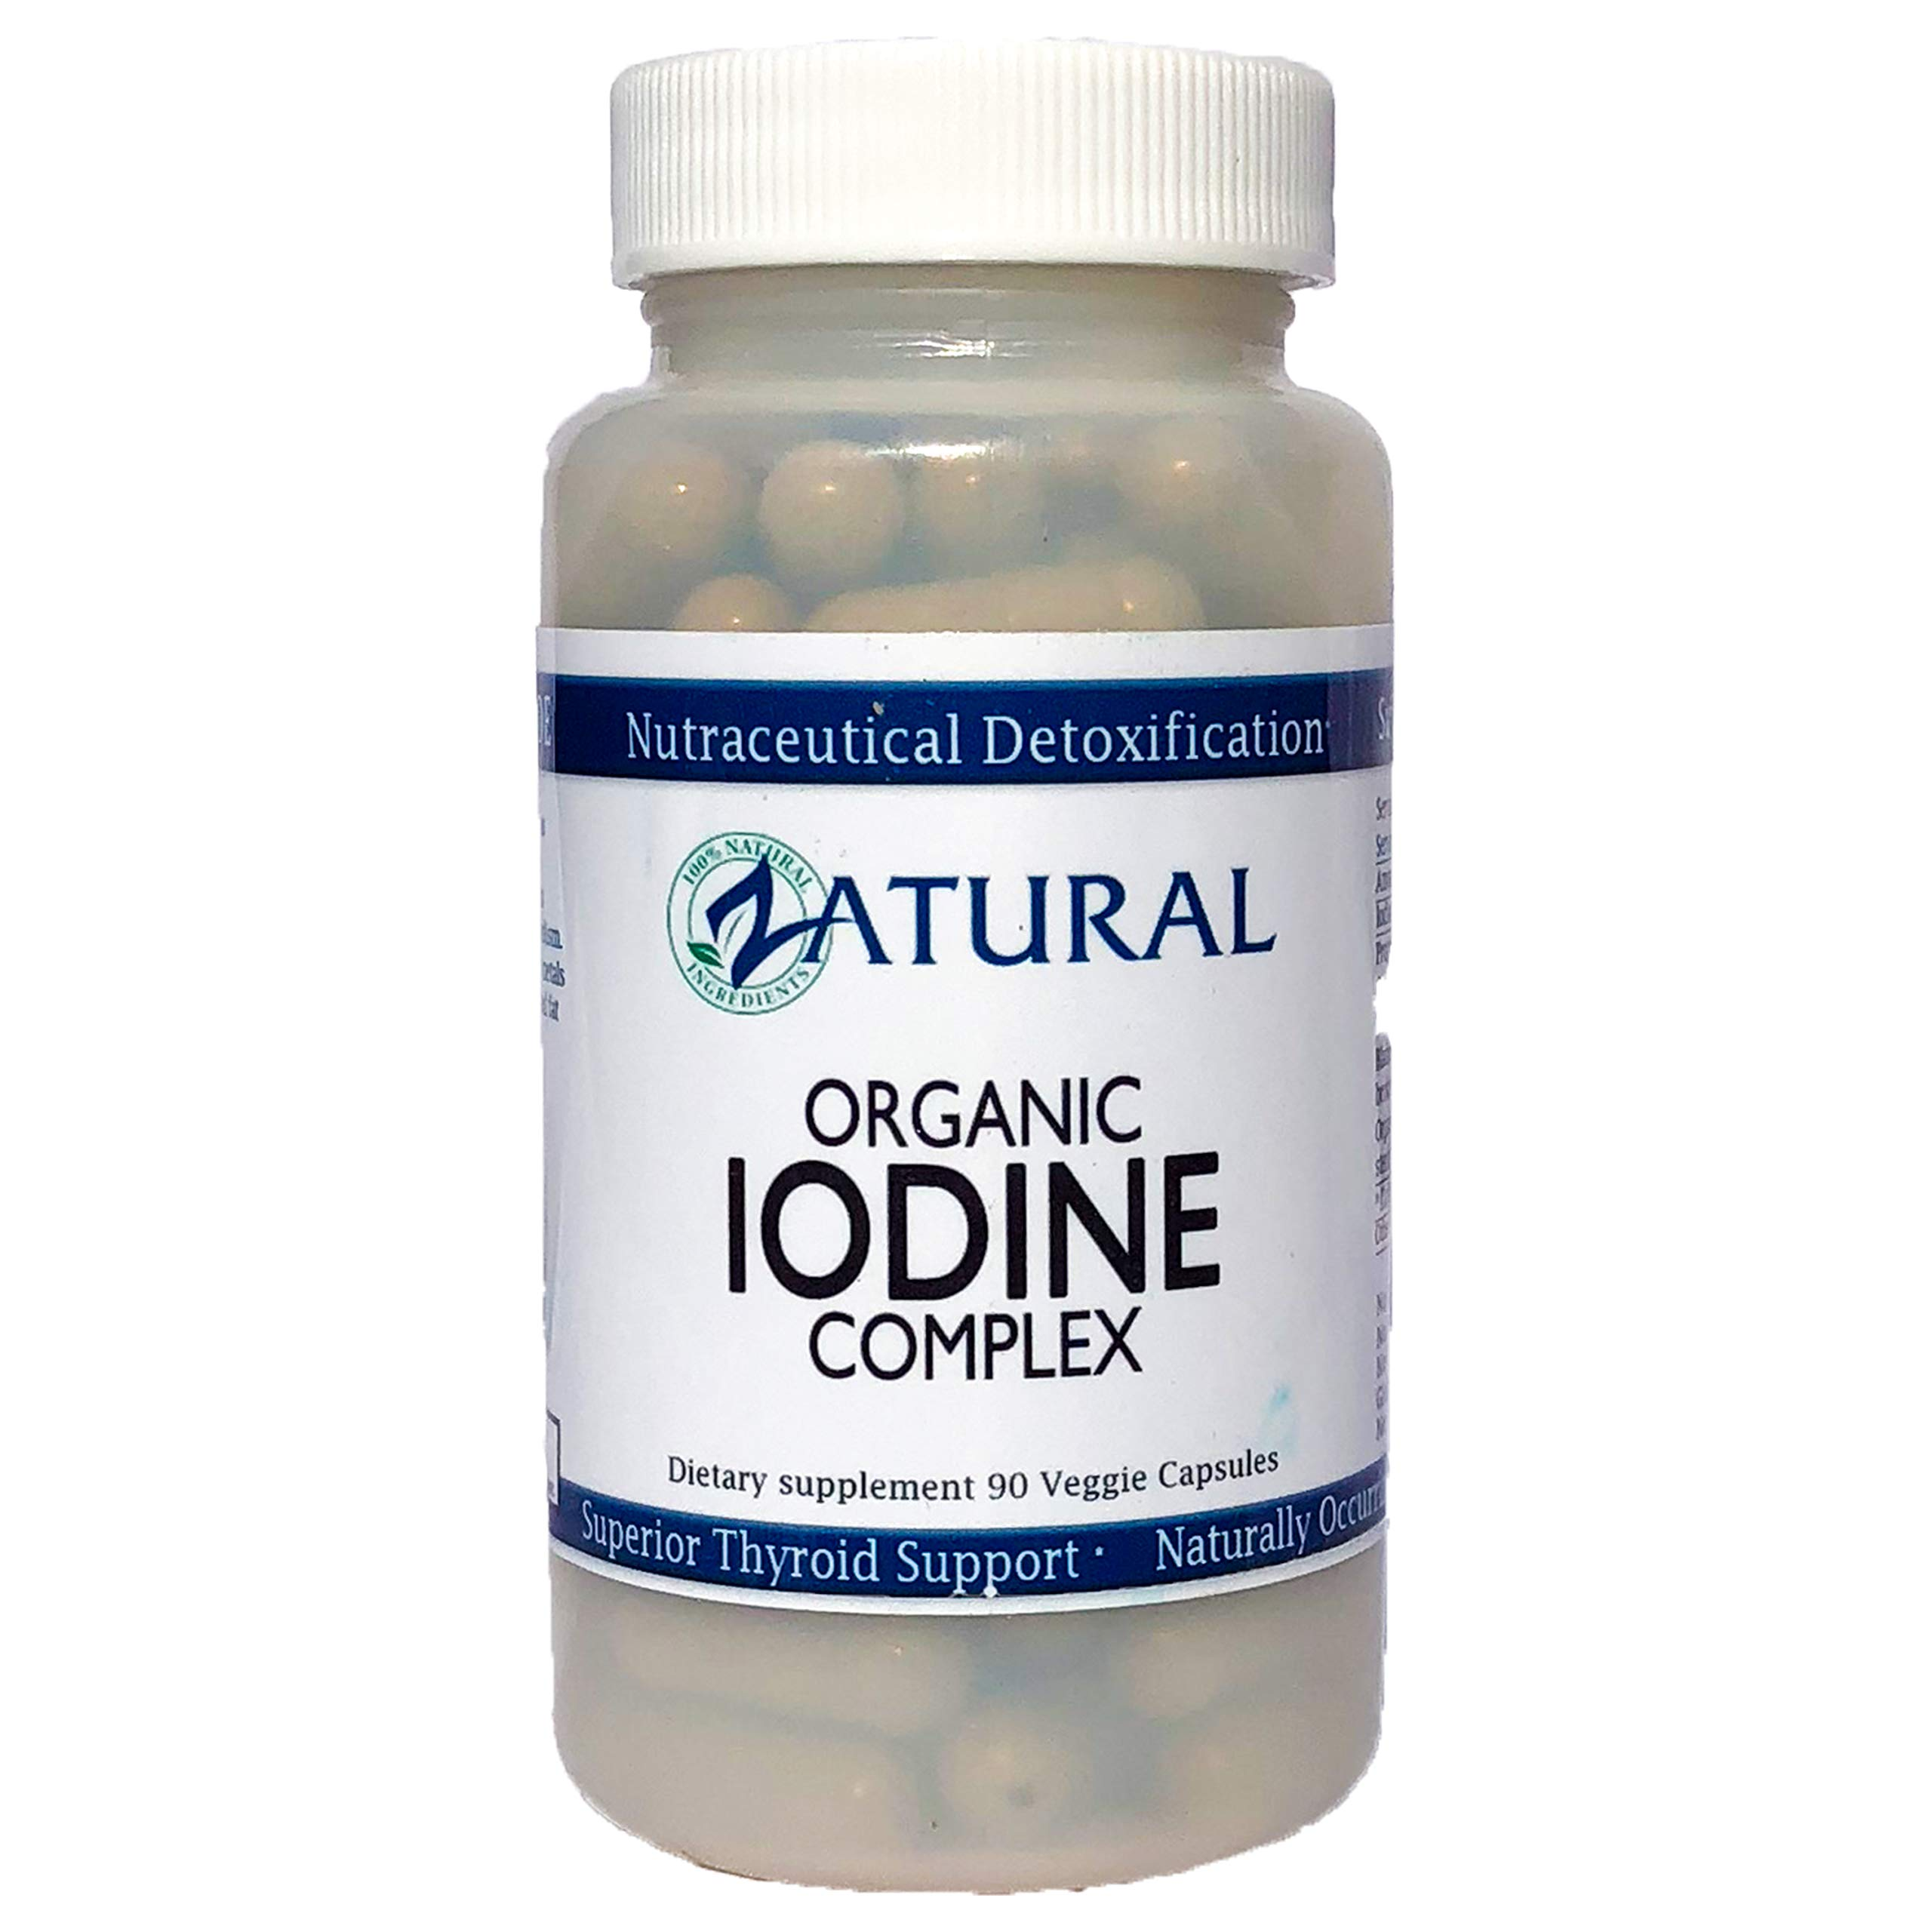 Organic Iodine Complex | Live-Source Iodine | Superior Thyroid Support | Nutraceutical Detoxification | Naturally Occurring Iodine (2)